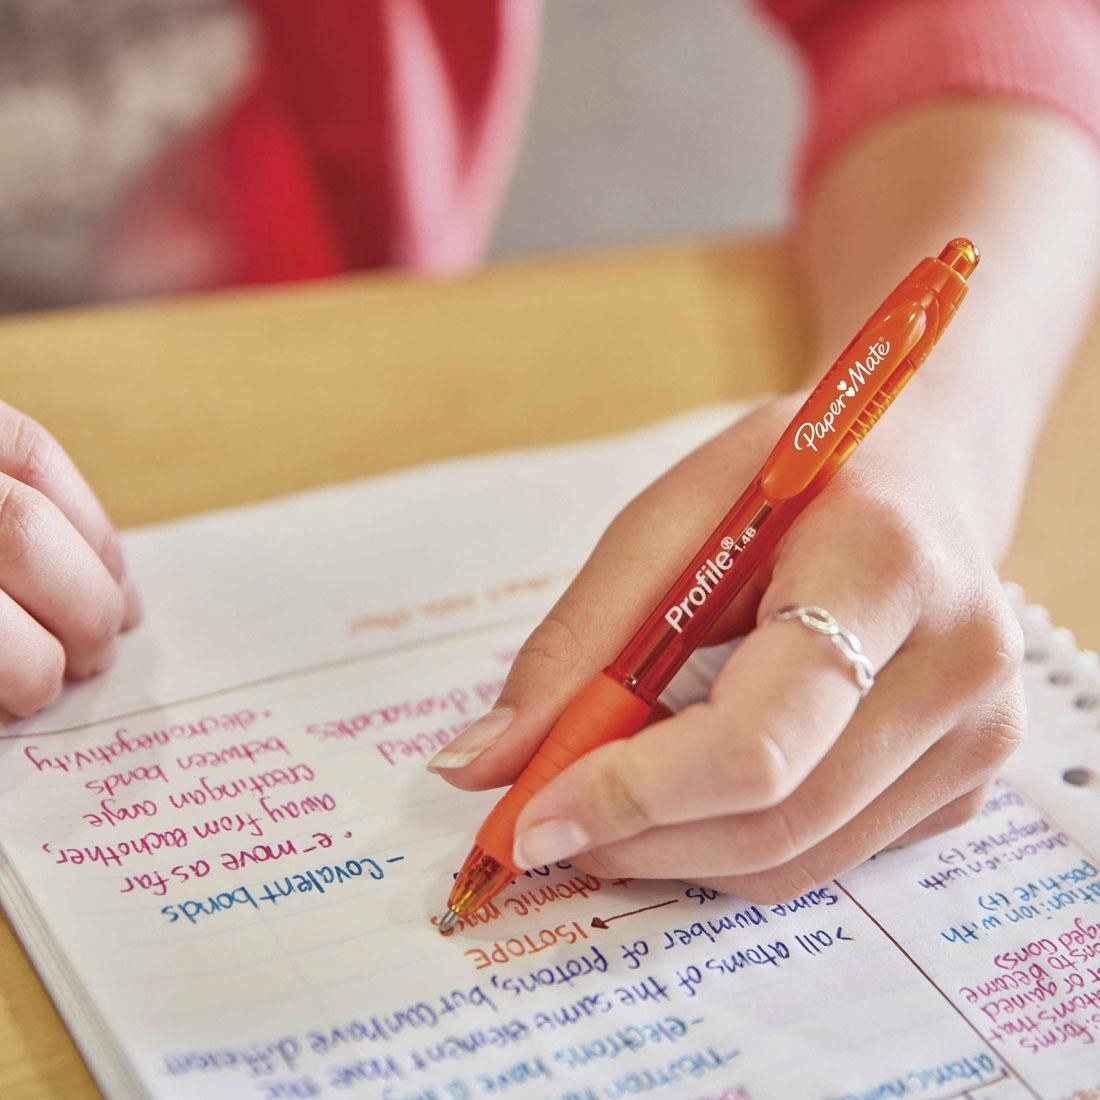 a hand using the orange pen to write notes